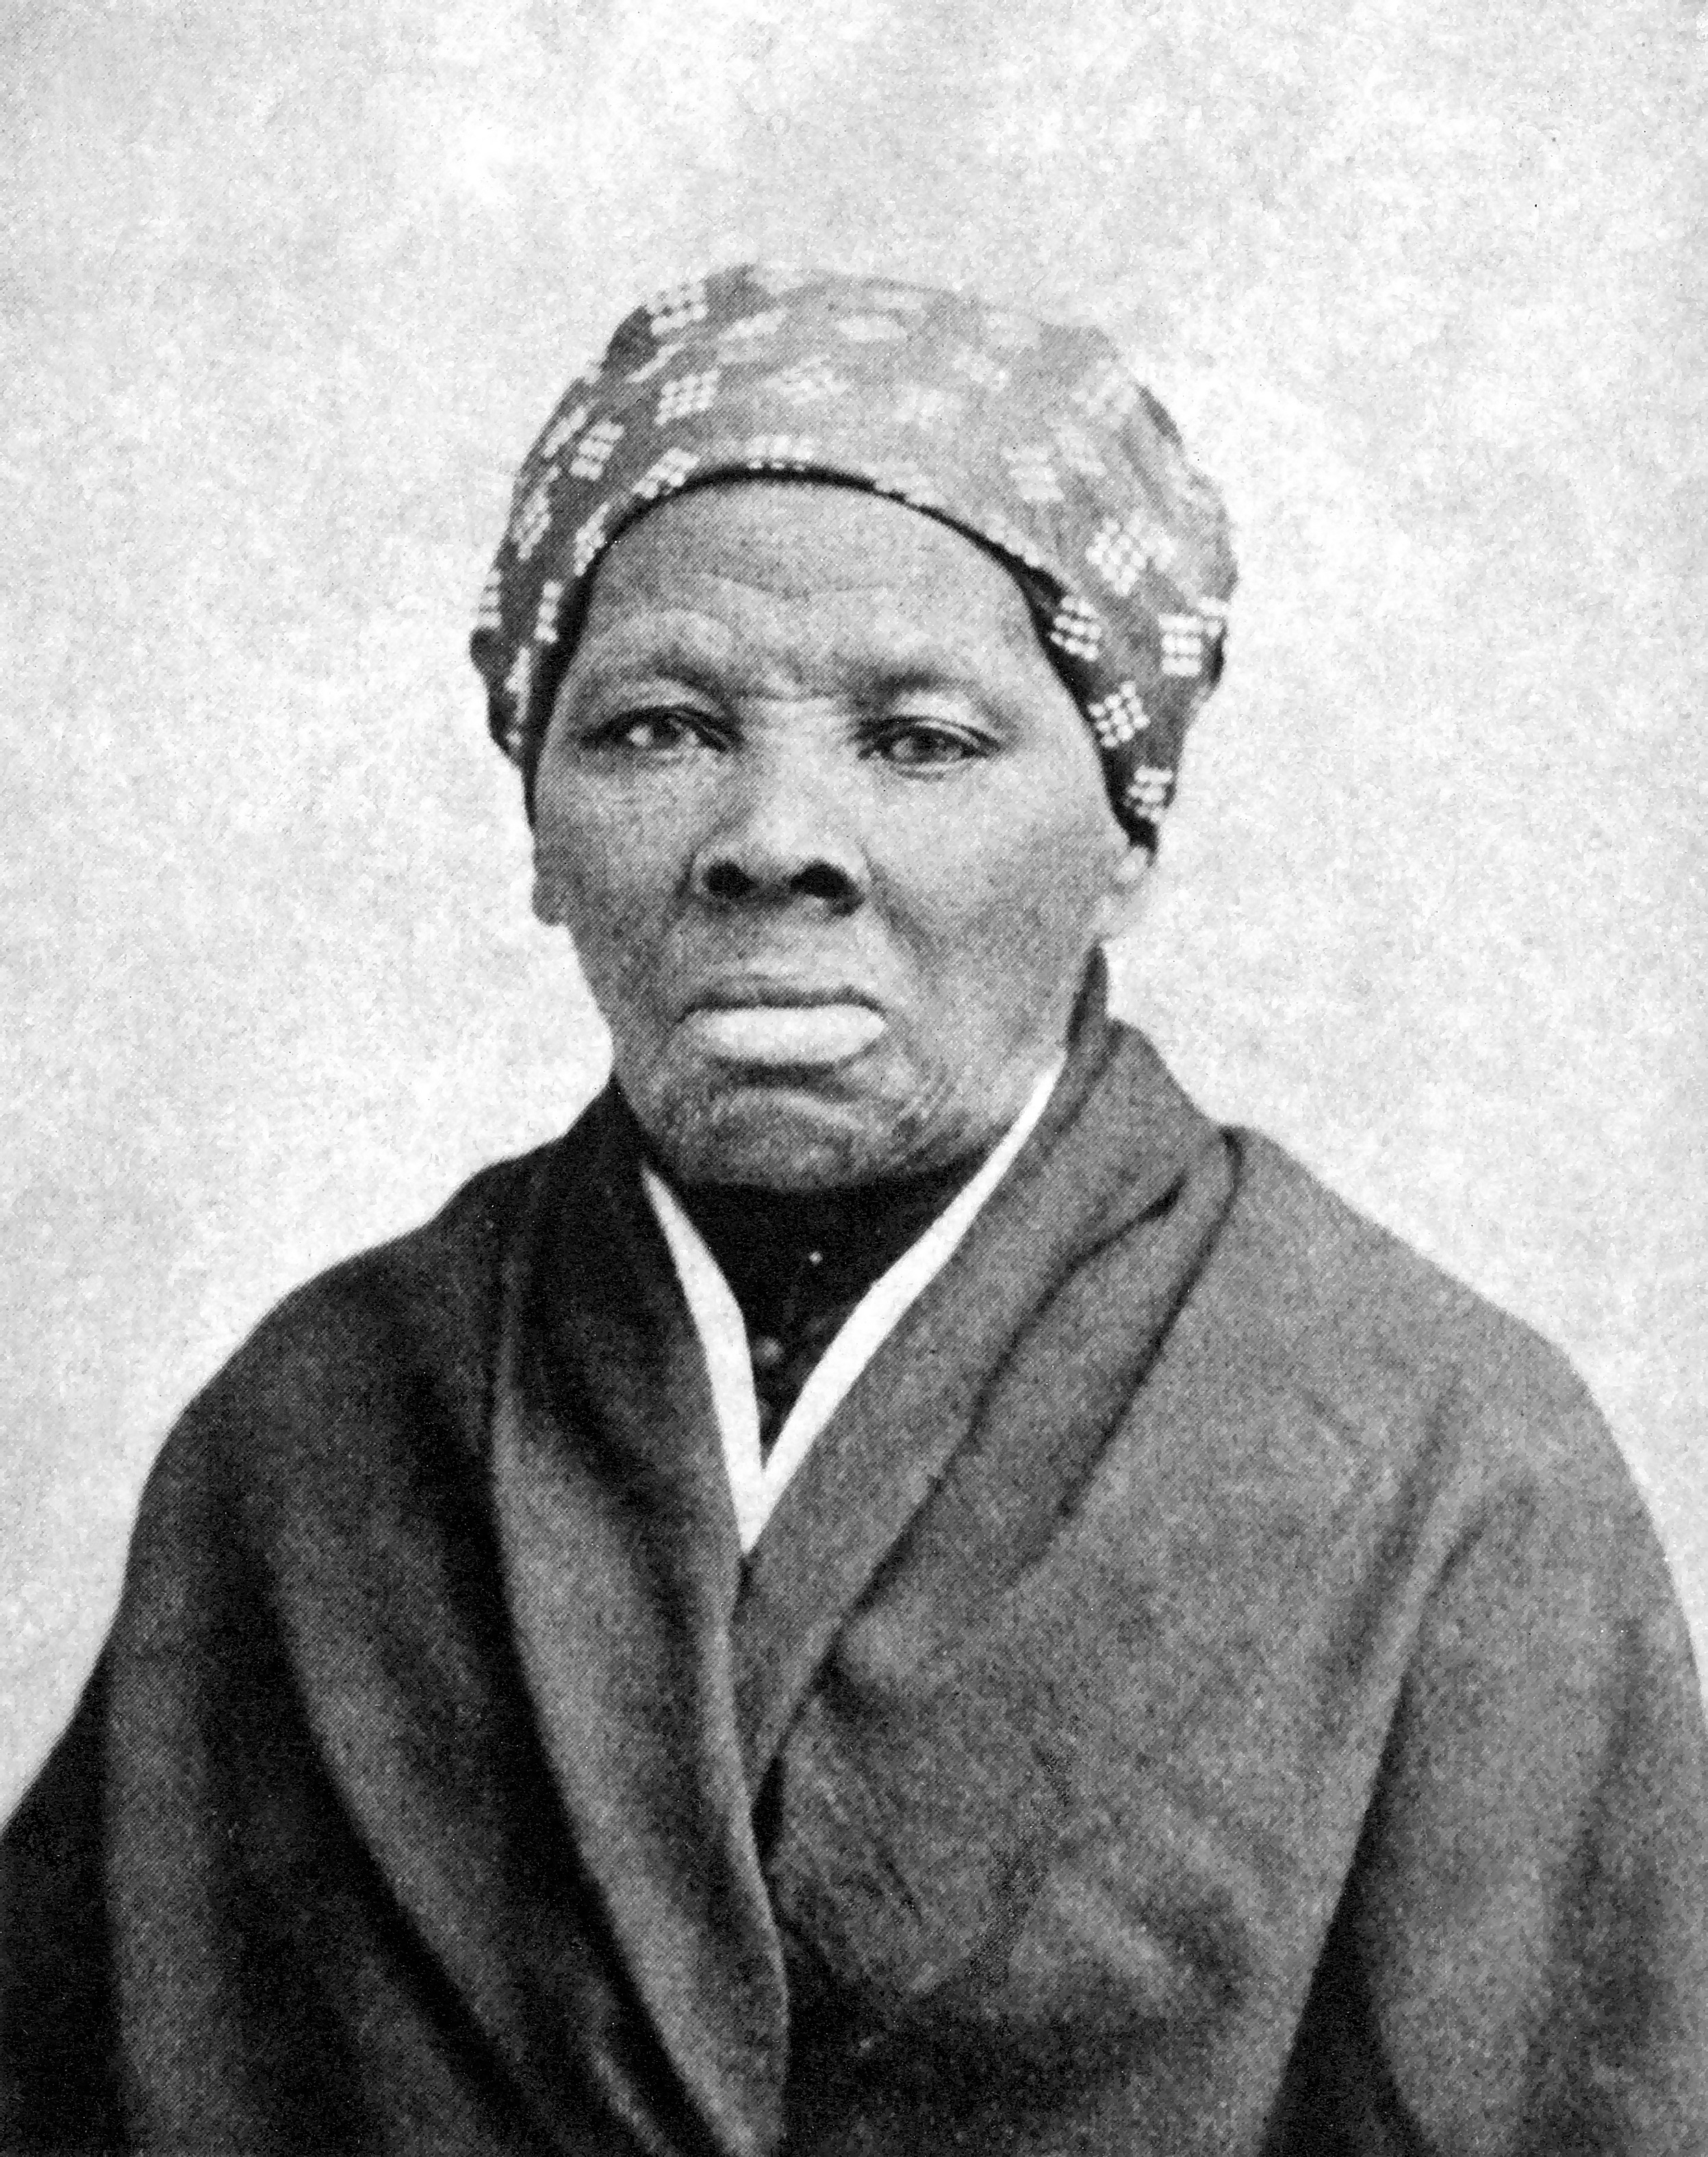 HARRIET TUBMAN - Harriet Tubman was an African American woman that was born into slavery. She escaped slavery in 1849, changed her name,and, through the Underground Railroad, helped free over 300 slaves.After the Emancipation Proclamation was signed in 1862,Harriet Tubman became an advocate for women's rights alongside some of the strongest women in the movement.She always welcomed those in need into her home and she used her experiences to be a voice for the oppressed, playing a great role in the history of freedom and women's rights.